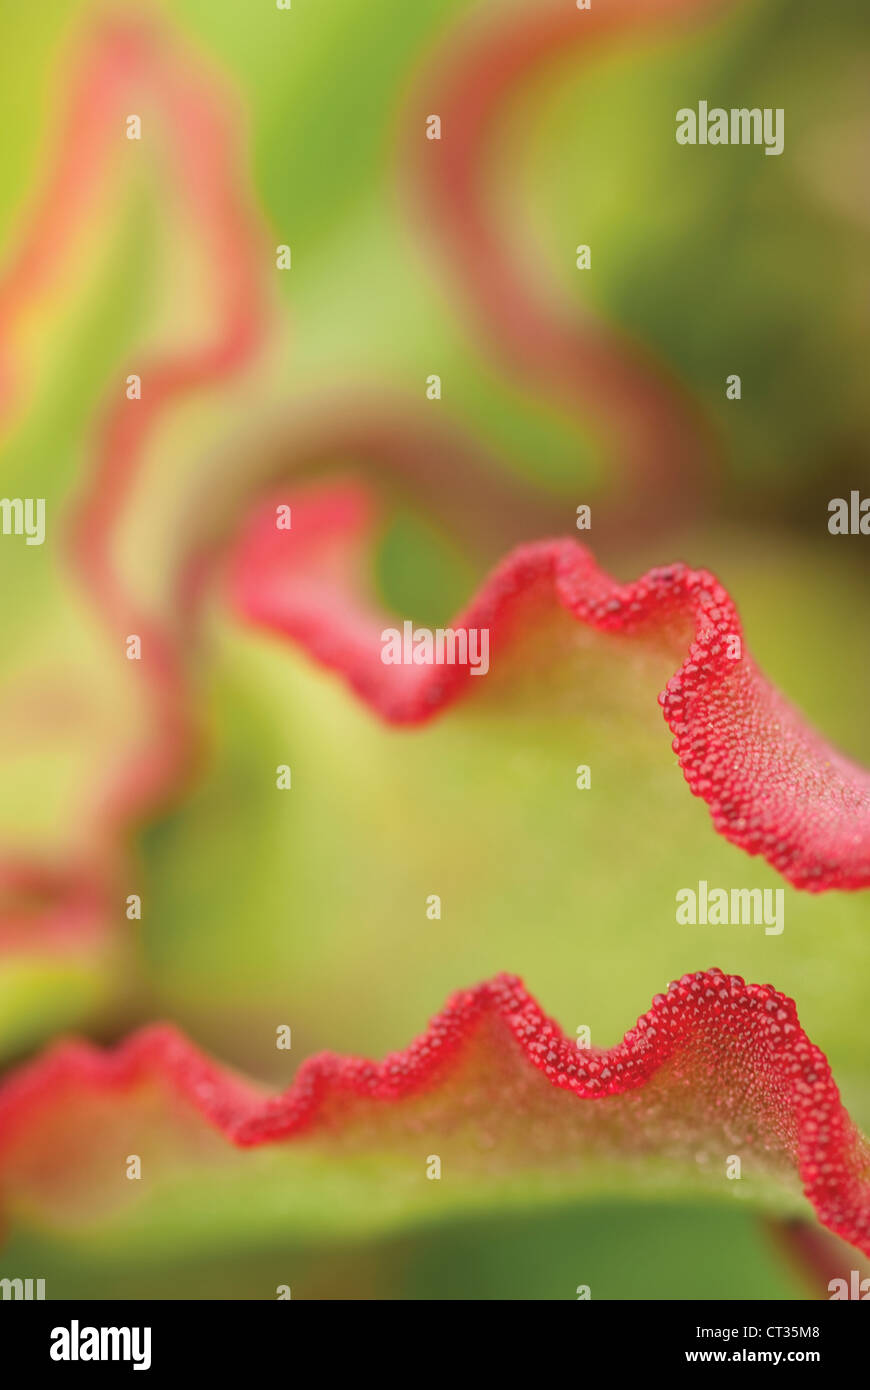 Cotyledon orbiculata, Round-leafed Navel-wort or Pig's ear. Undulating green leaves edged with red. - Stock Image